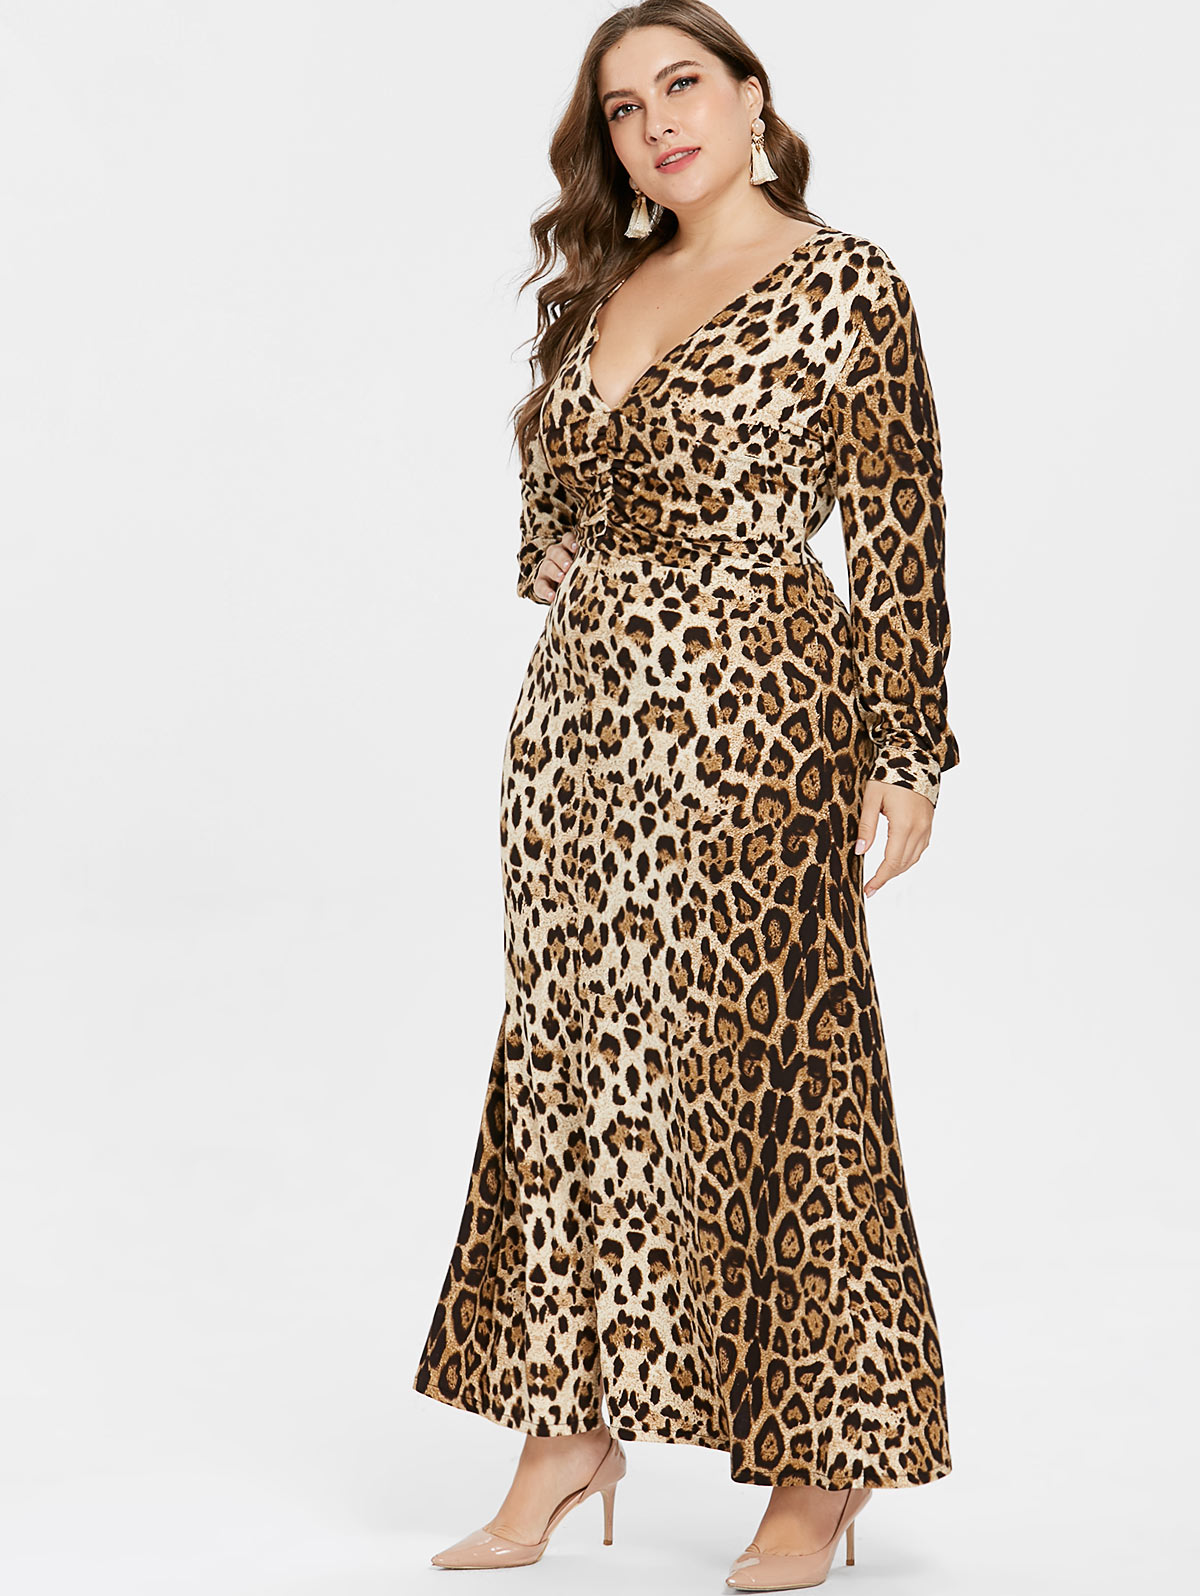 352997ef7f Wipalo Plus Size Sexy V Neck Leopard Dress Women Long Sleeves Ankle-Length  Dress Casual Autumn Ladies Clothes Big Size Vestido